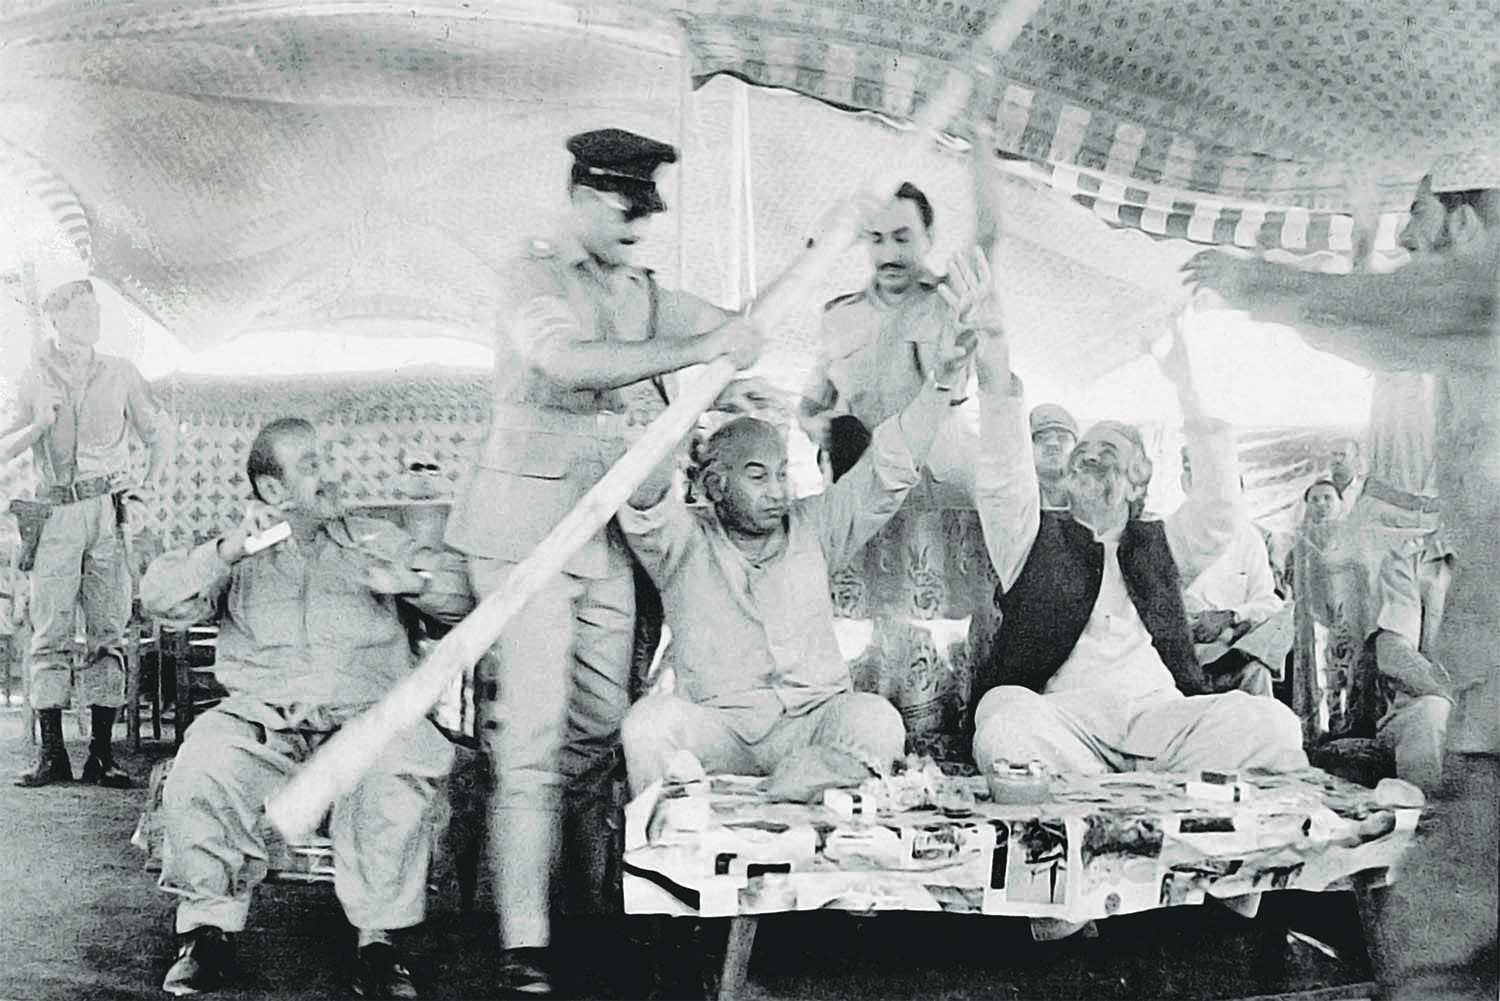 During a visit to Dera Bugti, Zulfikar Ali Bhutto and his host, Baluchistan Governor Nawab Akbar Bugti, had to stave off trouble when a tent collapsed during a public meeting. As subsequent events showed, political turbulence, however, could not be warded off that easily. | Photo: Dawn / White Star Archives